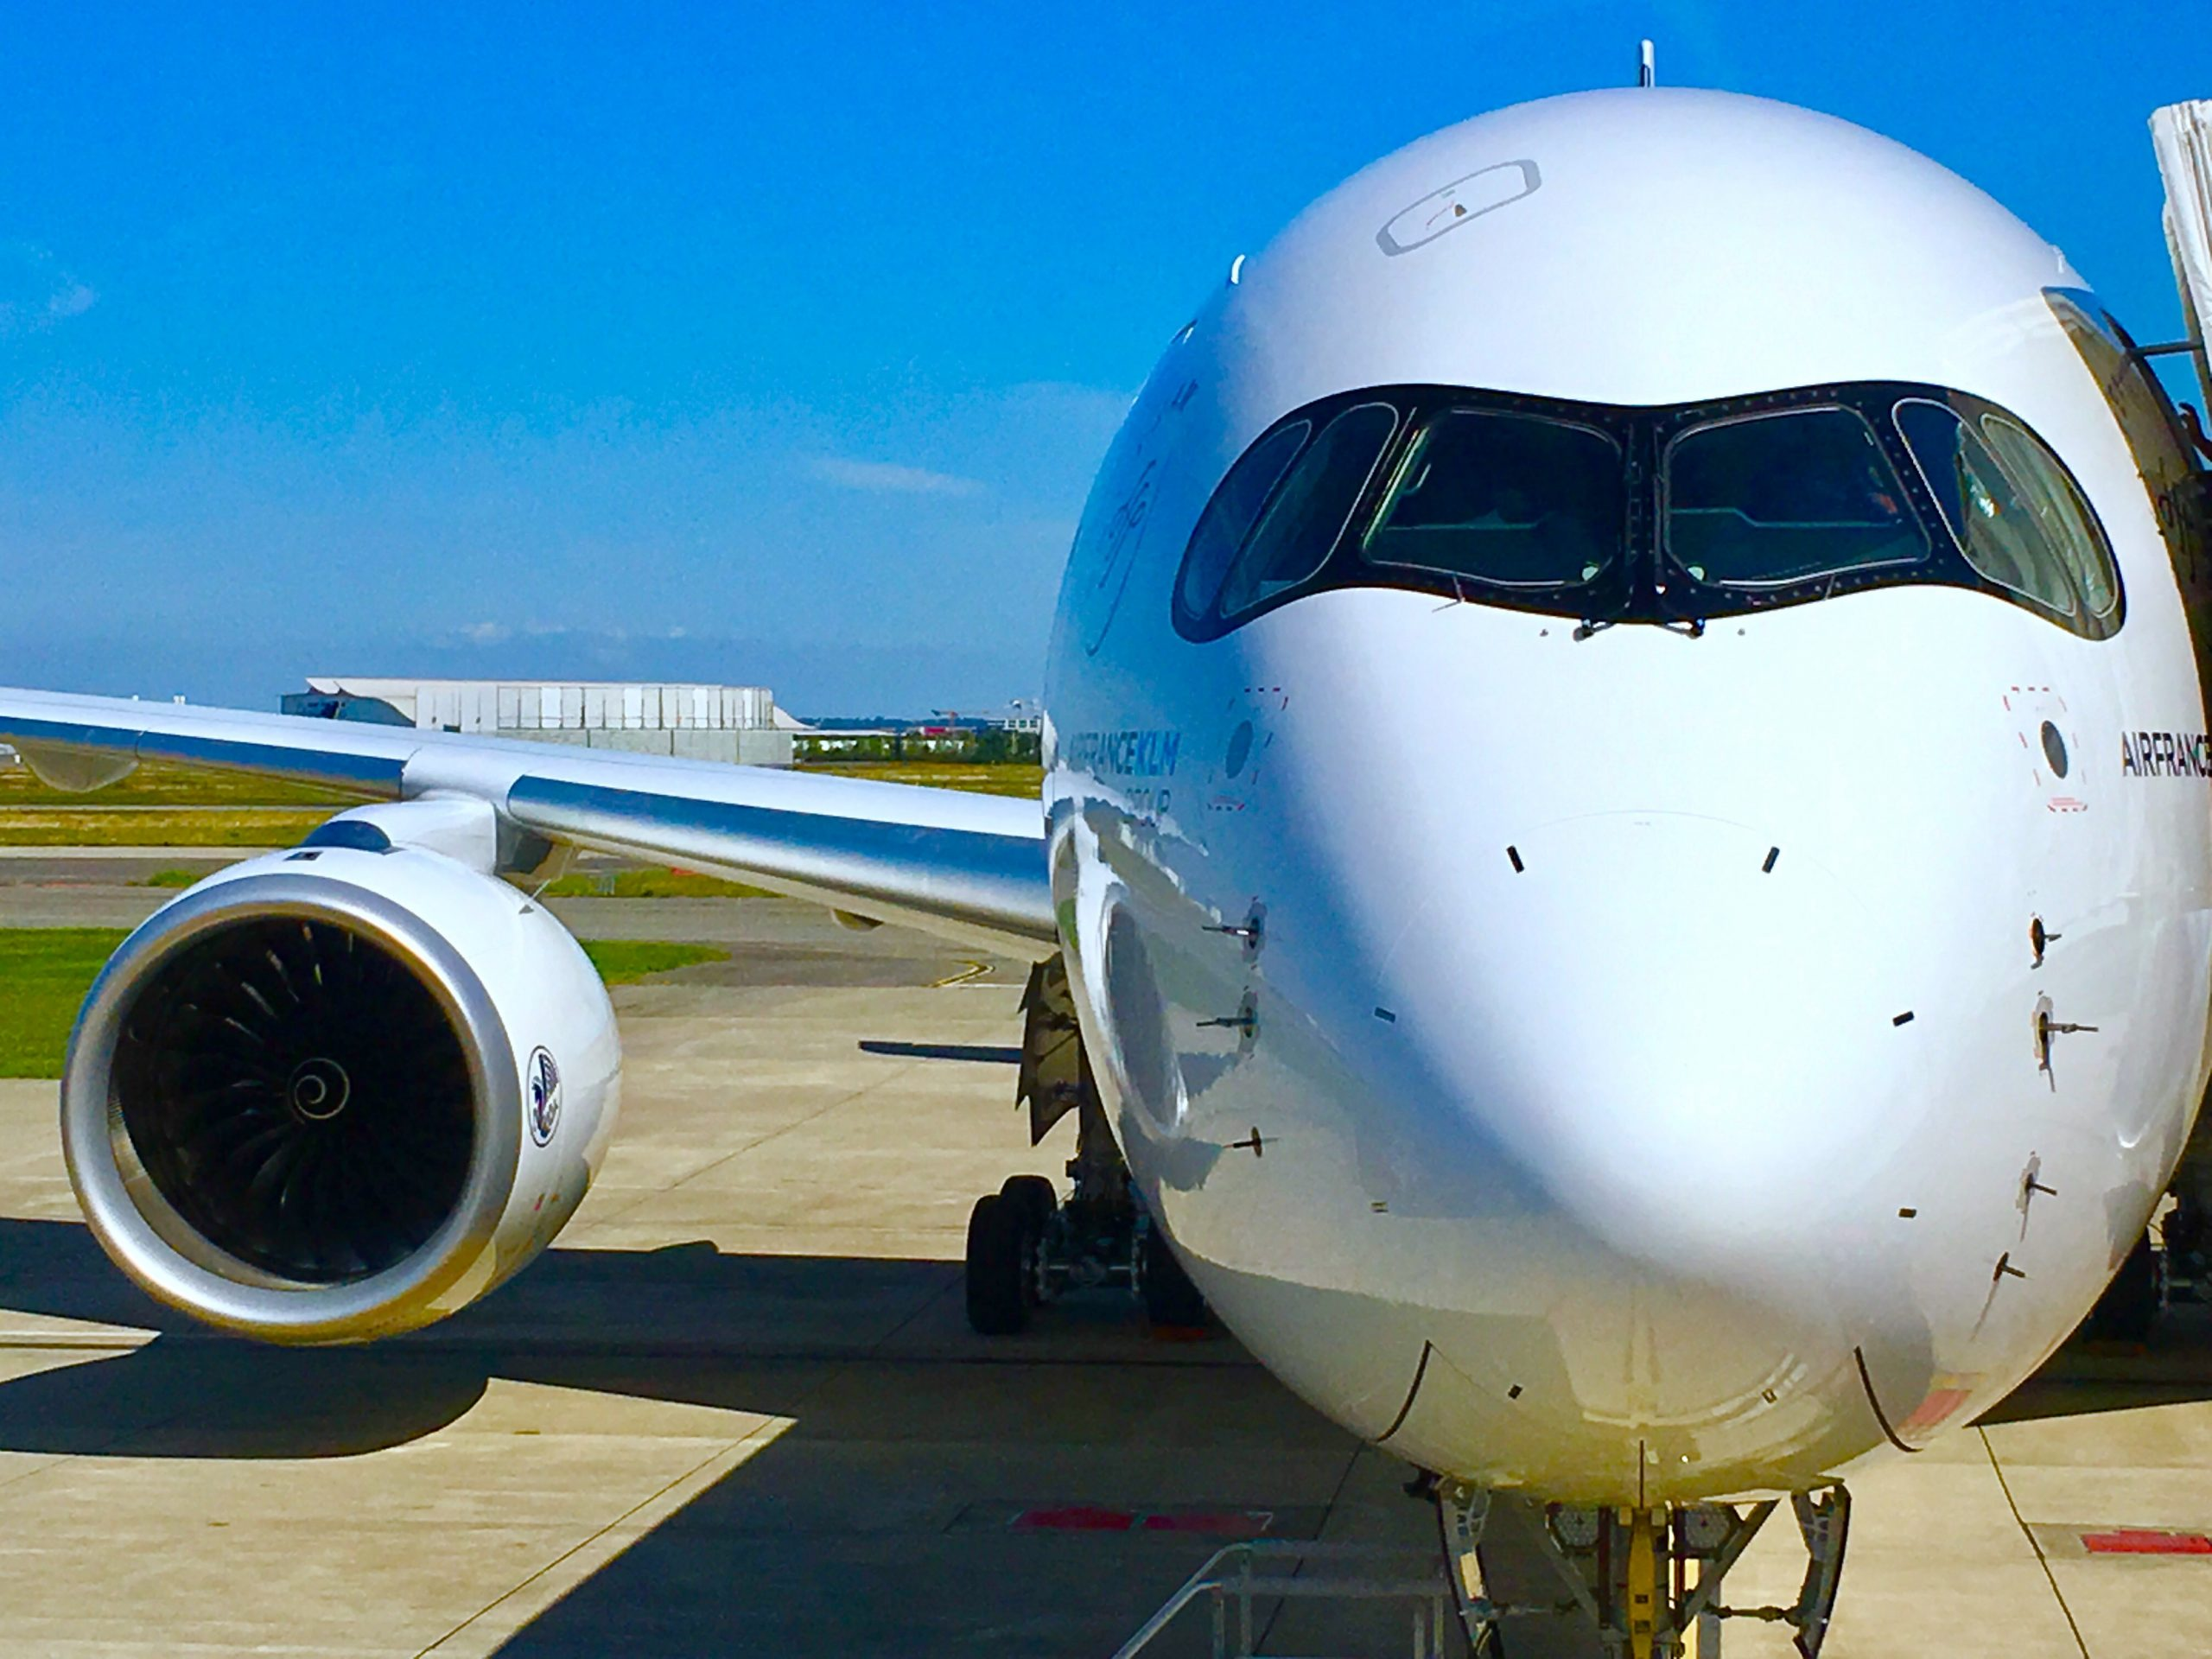 Air France chooses Michelin as its exclusive tyre supplier as part of an ambitious ten-year partnership